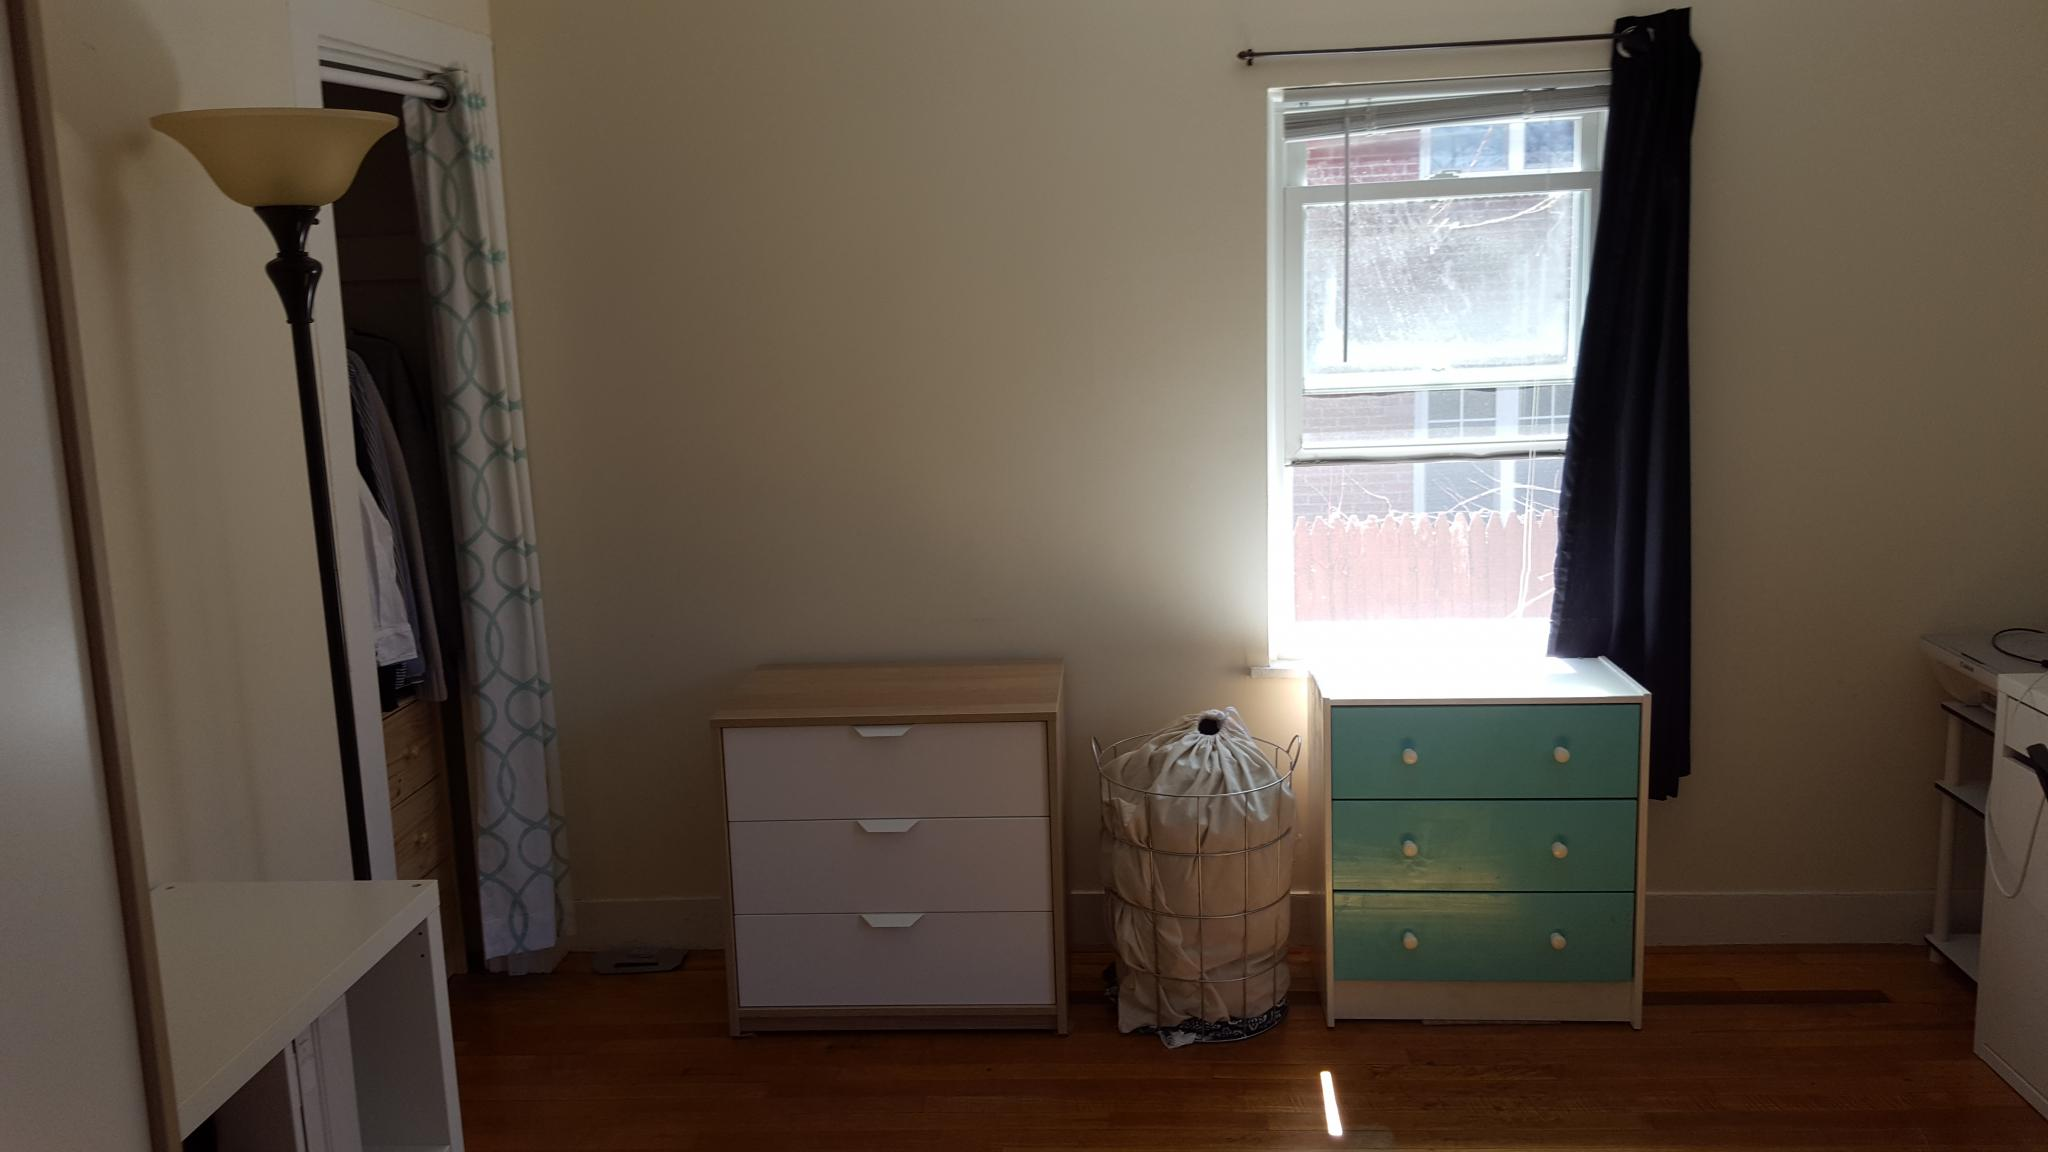 Additional photo for property listing at 8 Brock Street 8 Brock Street Boston, Massachusetts 02135 United States